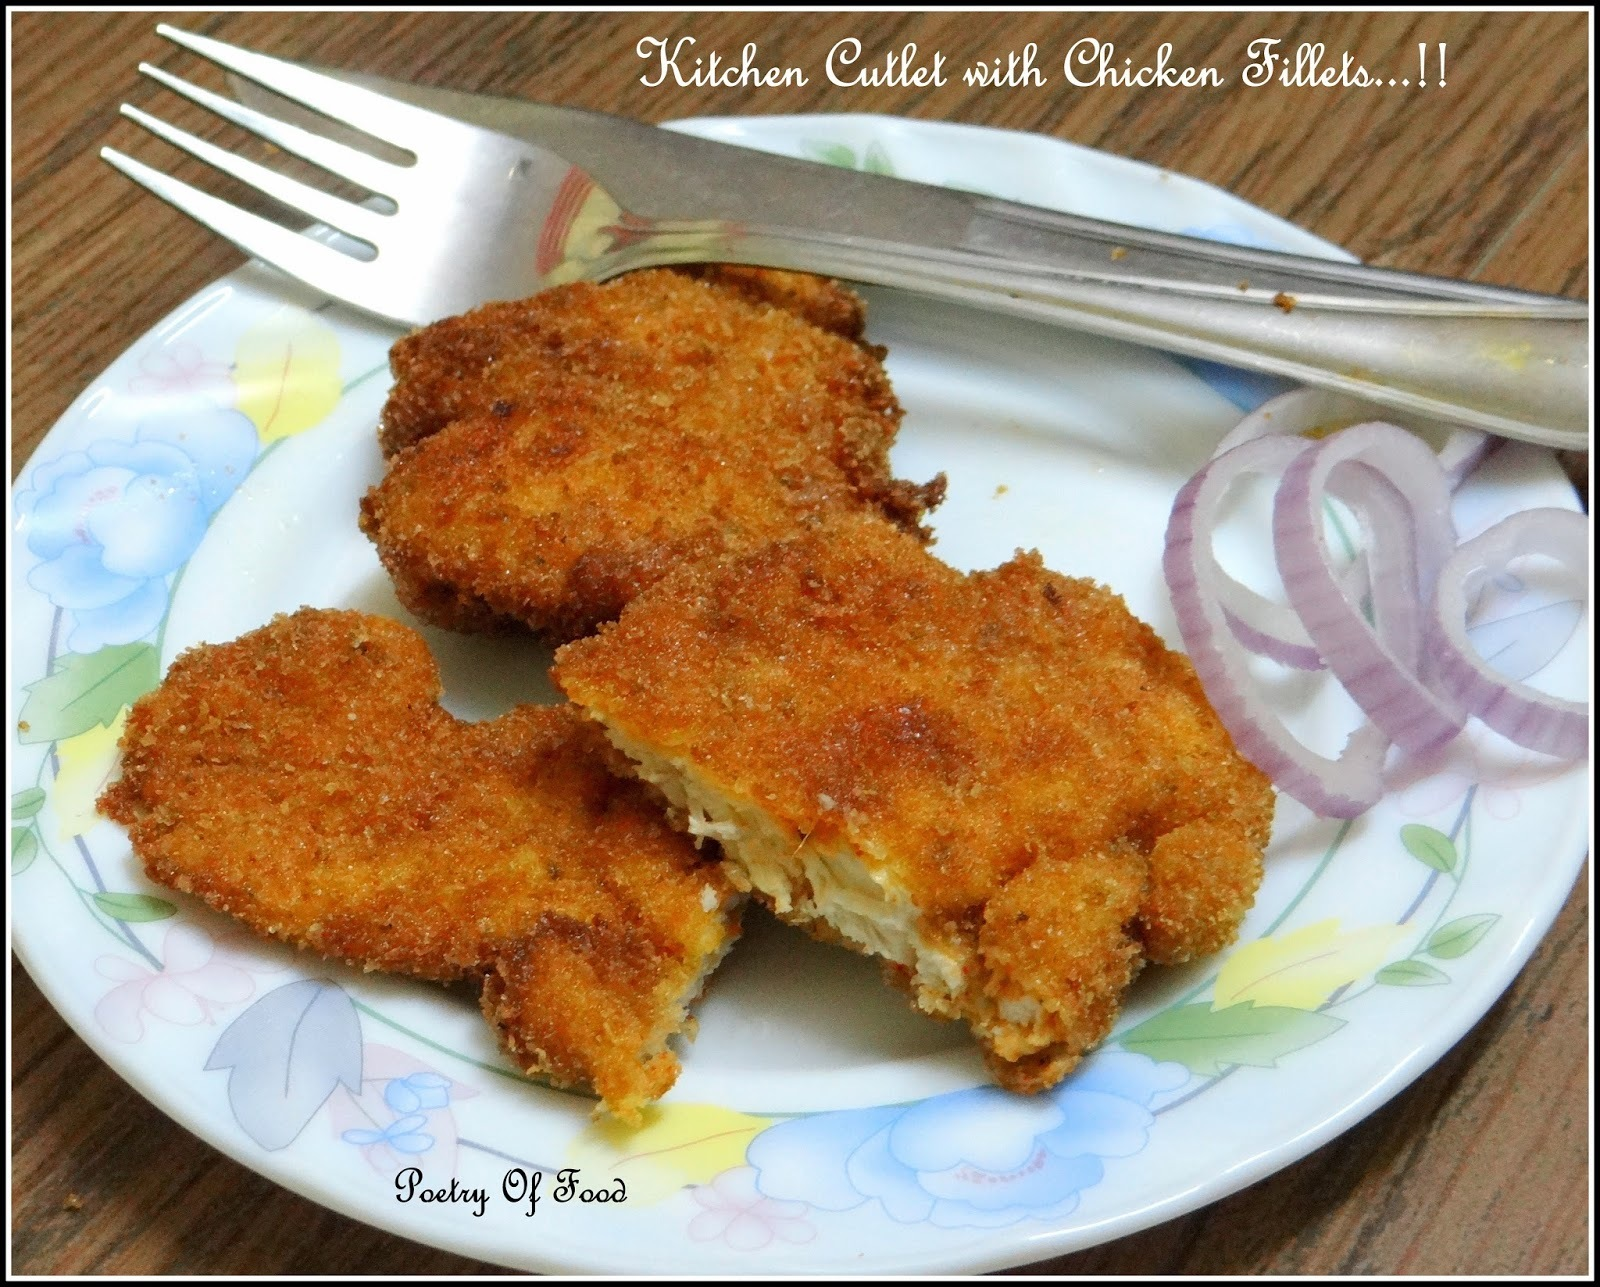 Chicken Cutlet With Chicken Fillet..!!